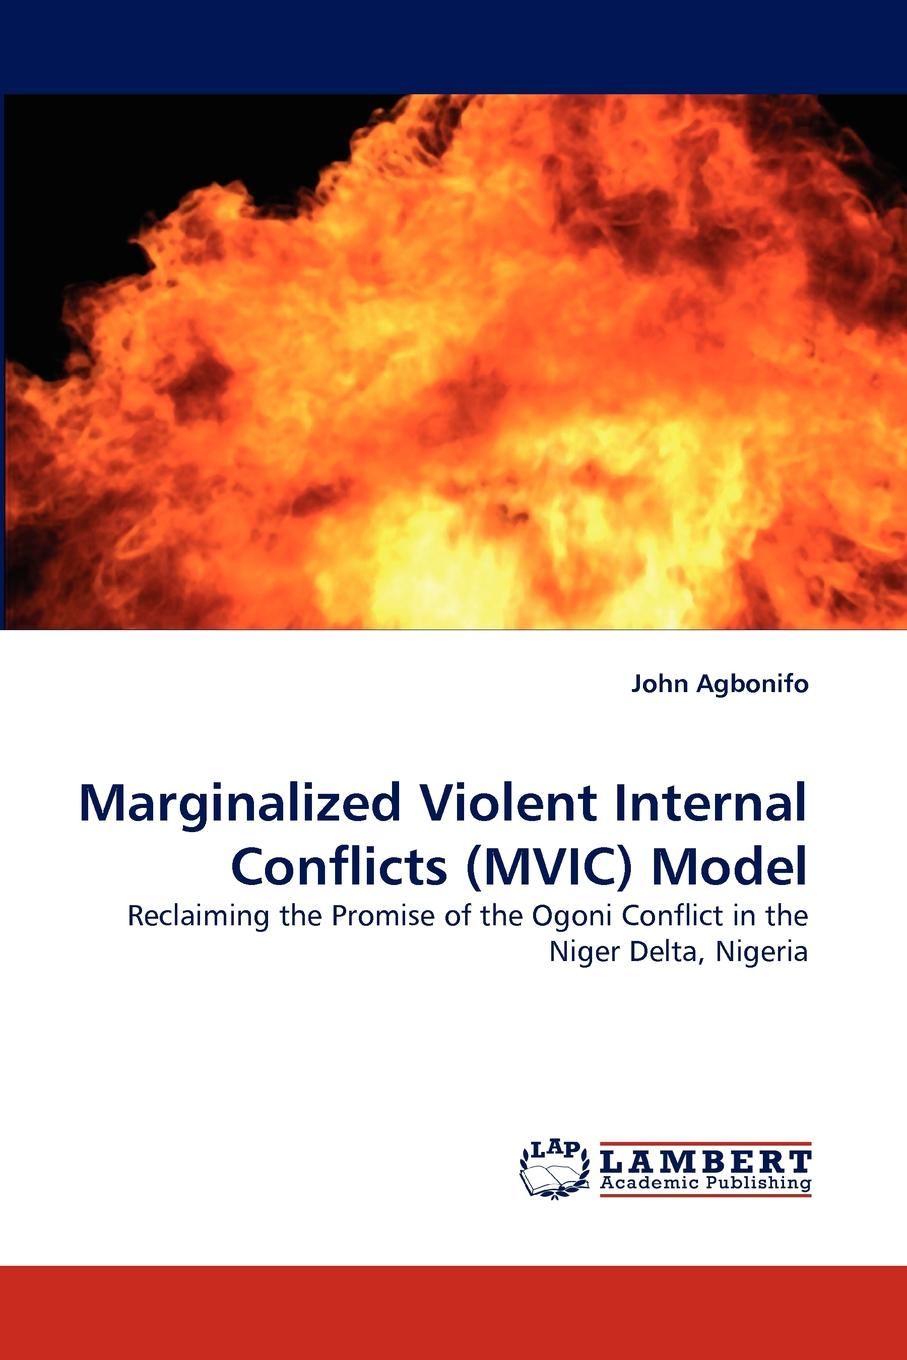 John Agbonifo Marginalized Violent Internal Conflicts (MVIC) Model alexey szydlowski ferguson model of the racial political conflict constitutional and legal aspects